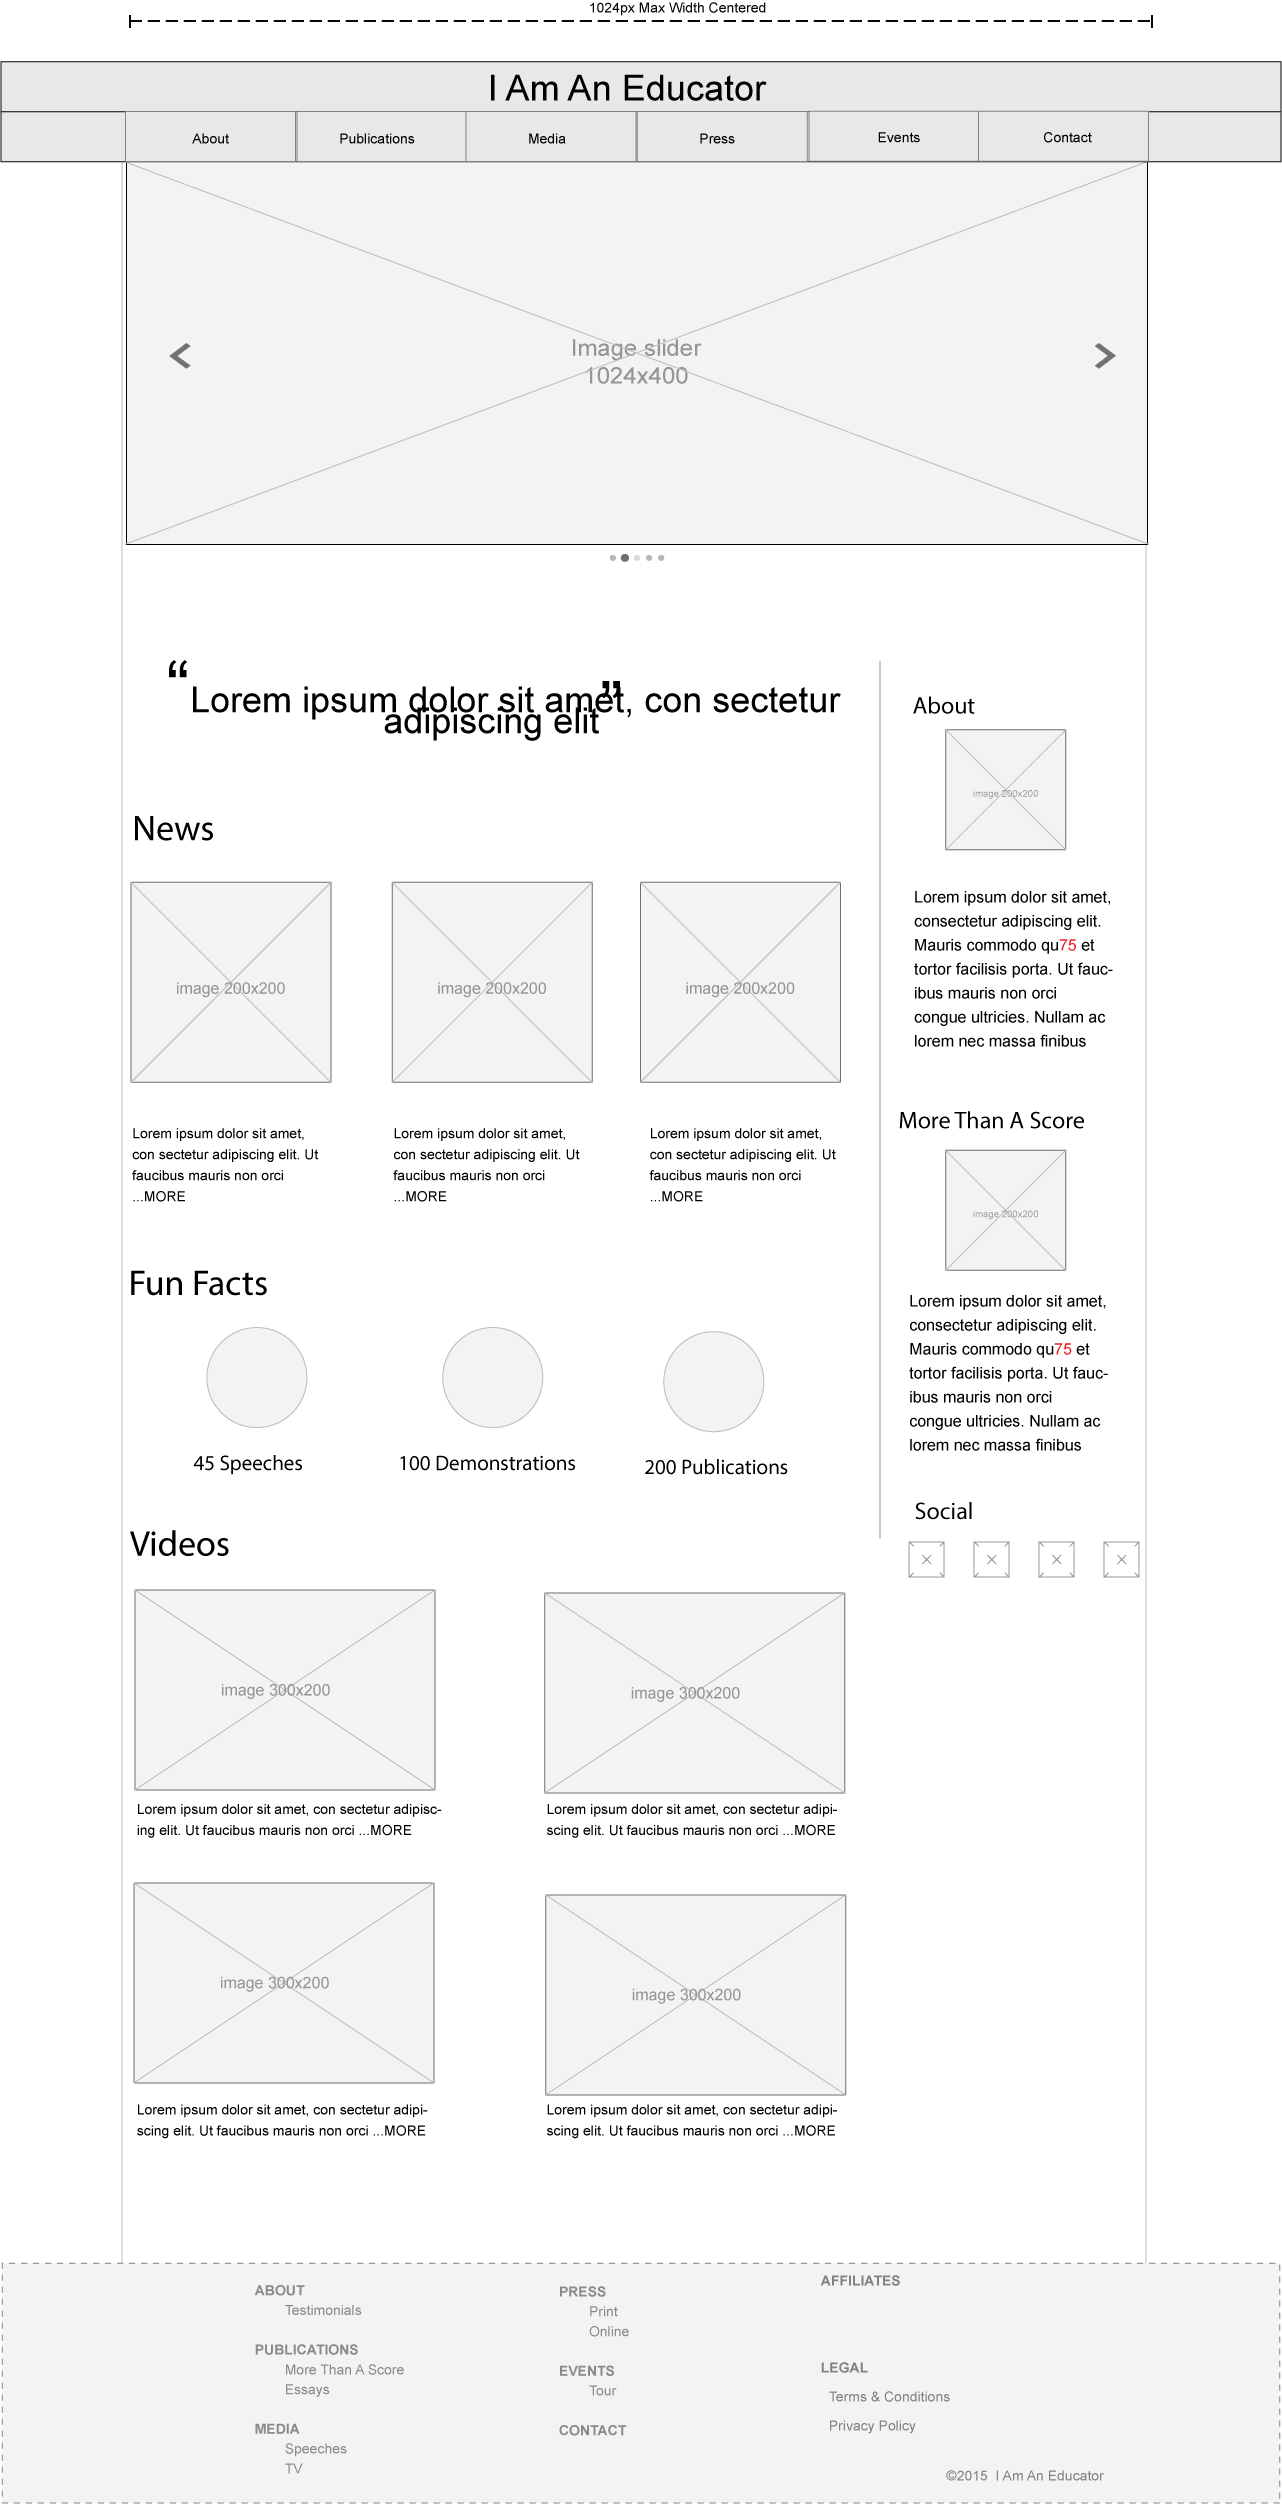 educator-wireframes.png